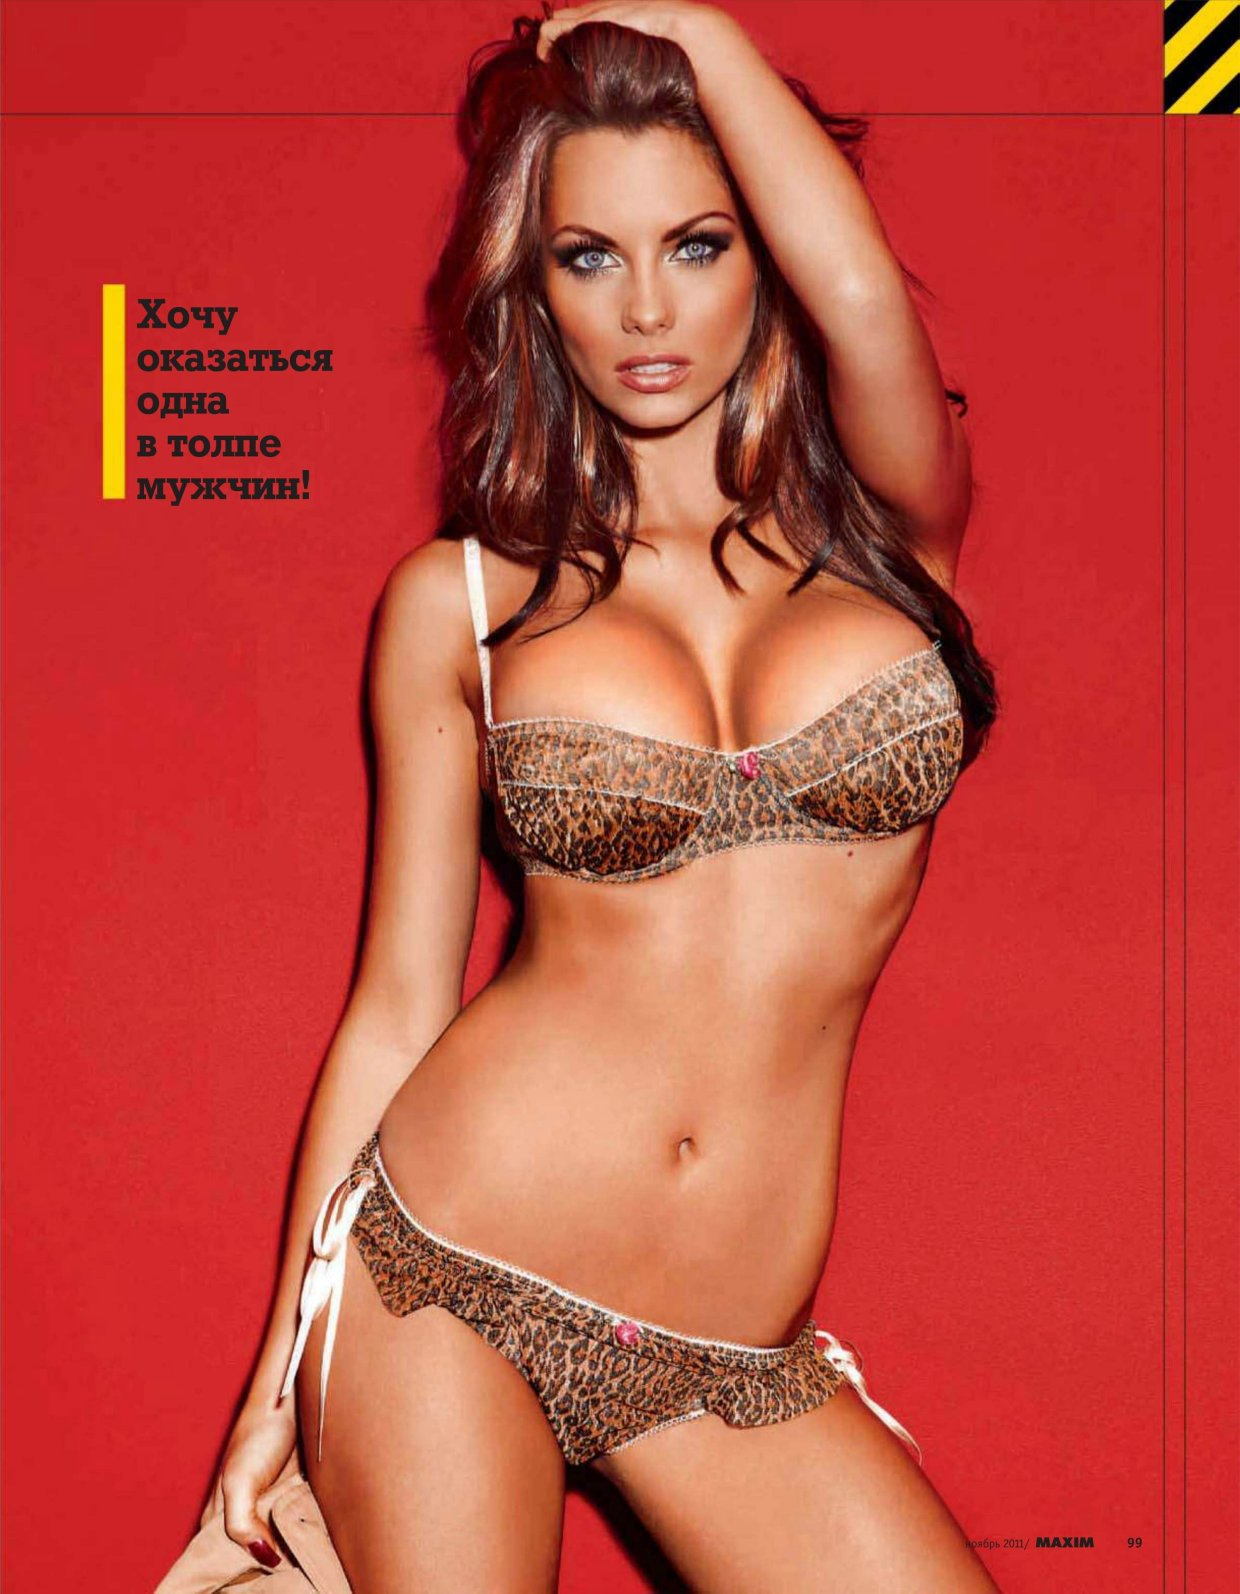 Not jessica jane clement red apologise, but